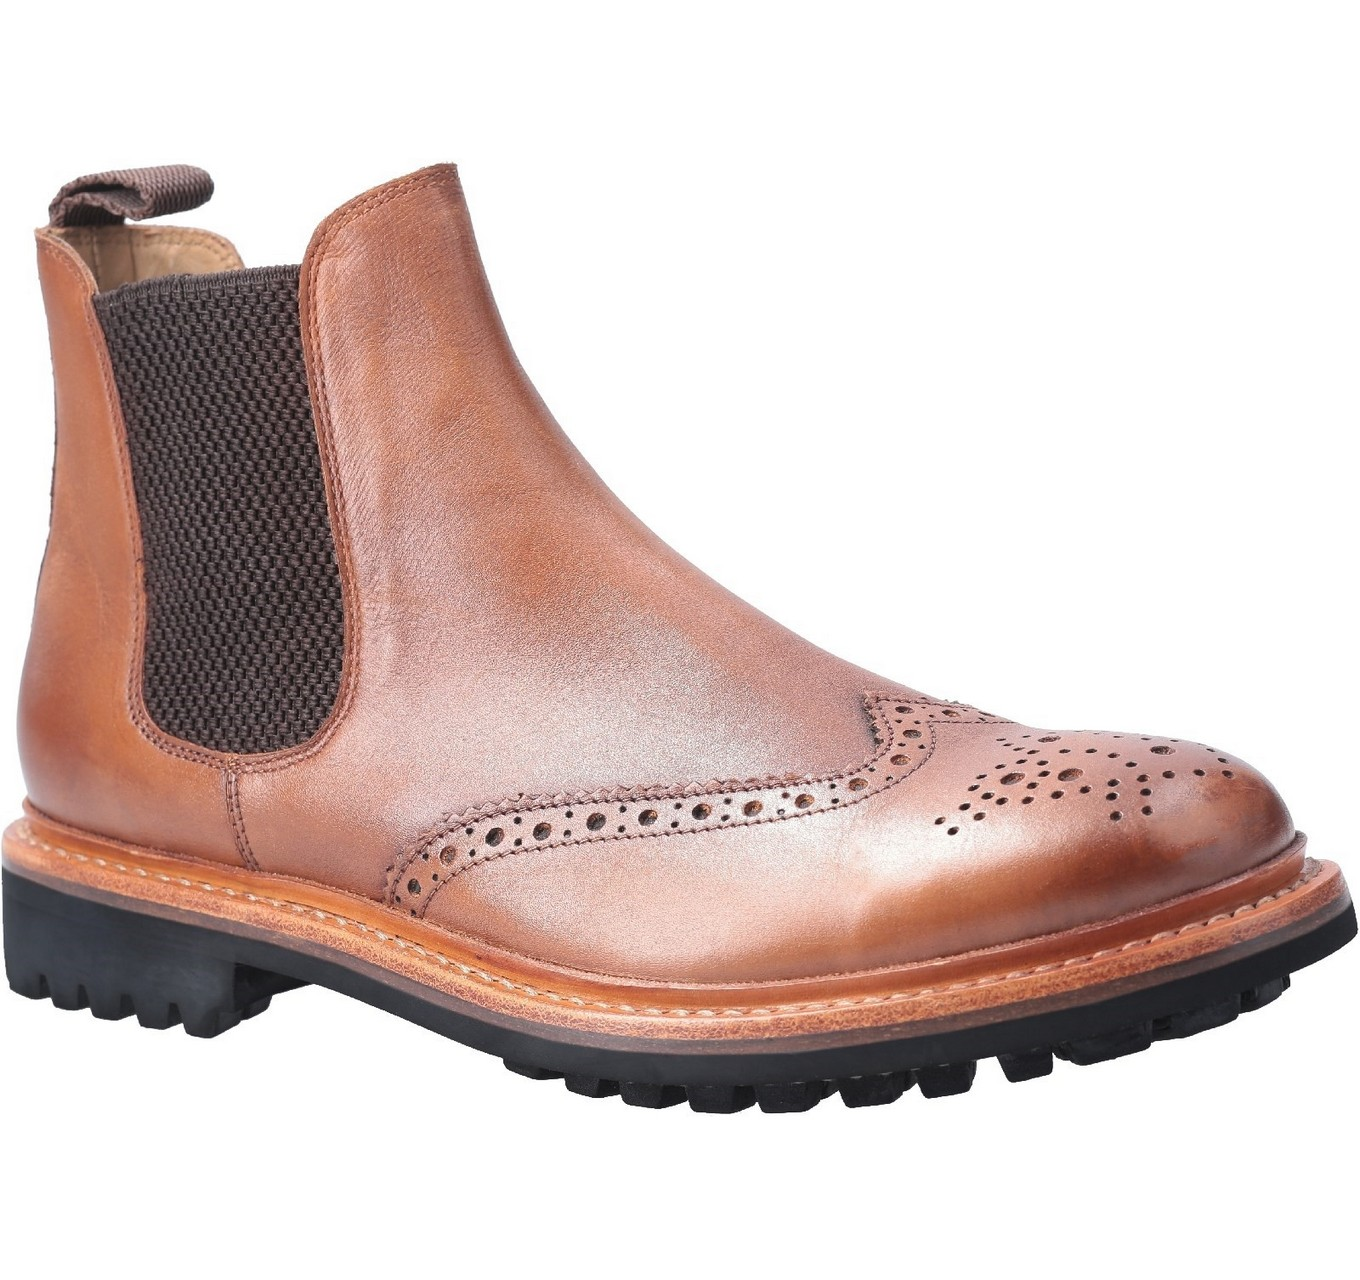 Siddington Chelsea Boot 10